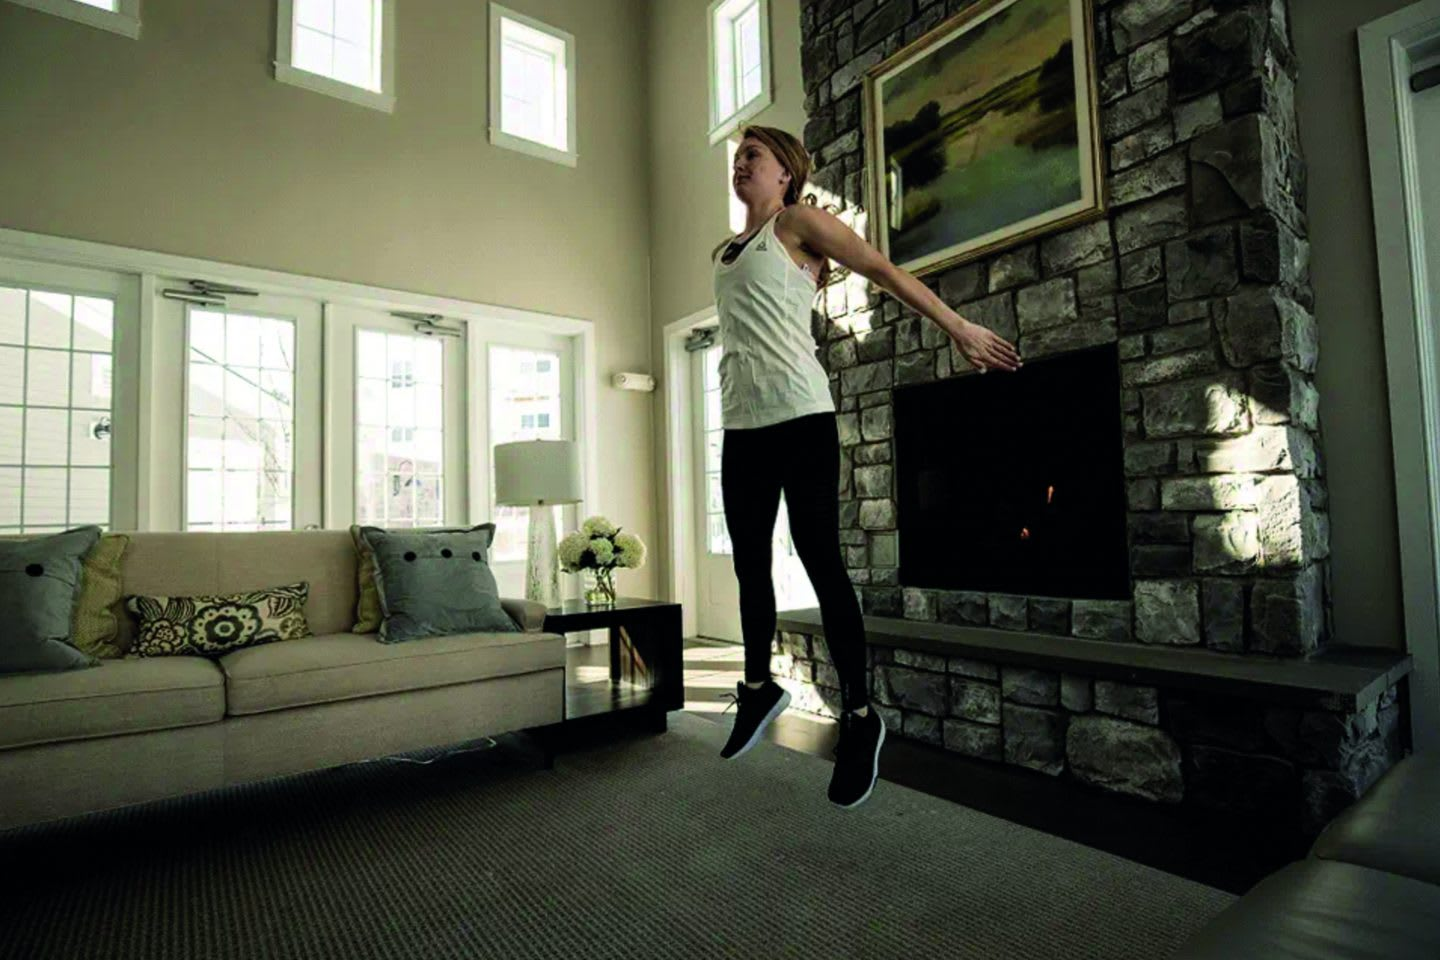 Girl jumping during workout at home, home office, workout, fitness, sports, strength, training, GamePlan A